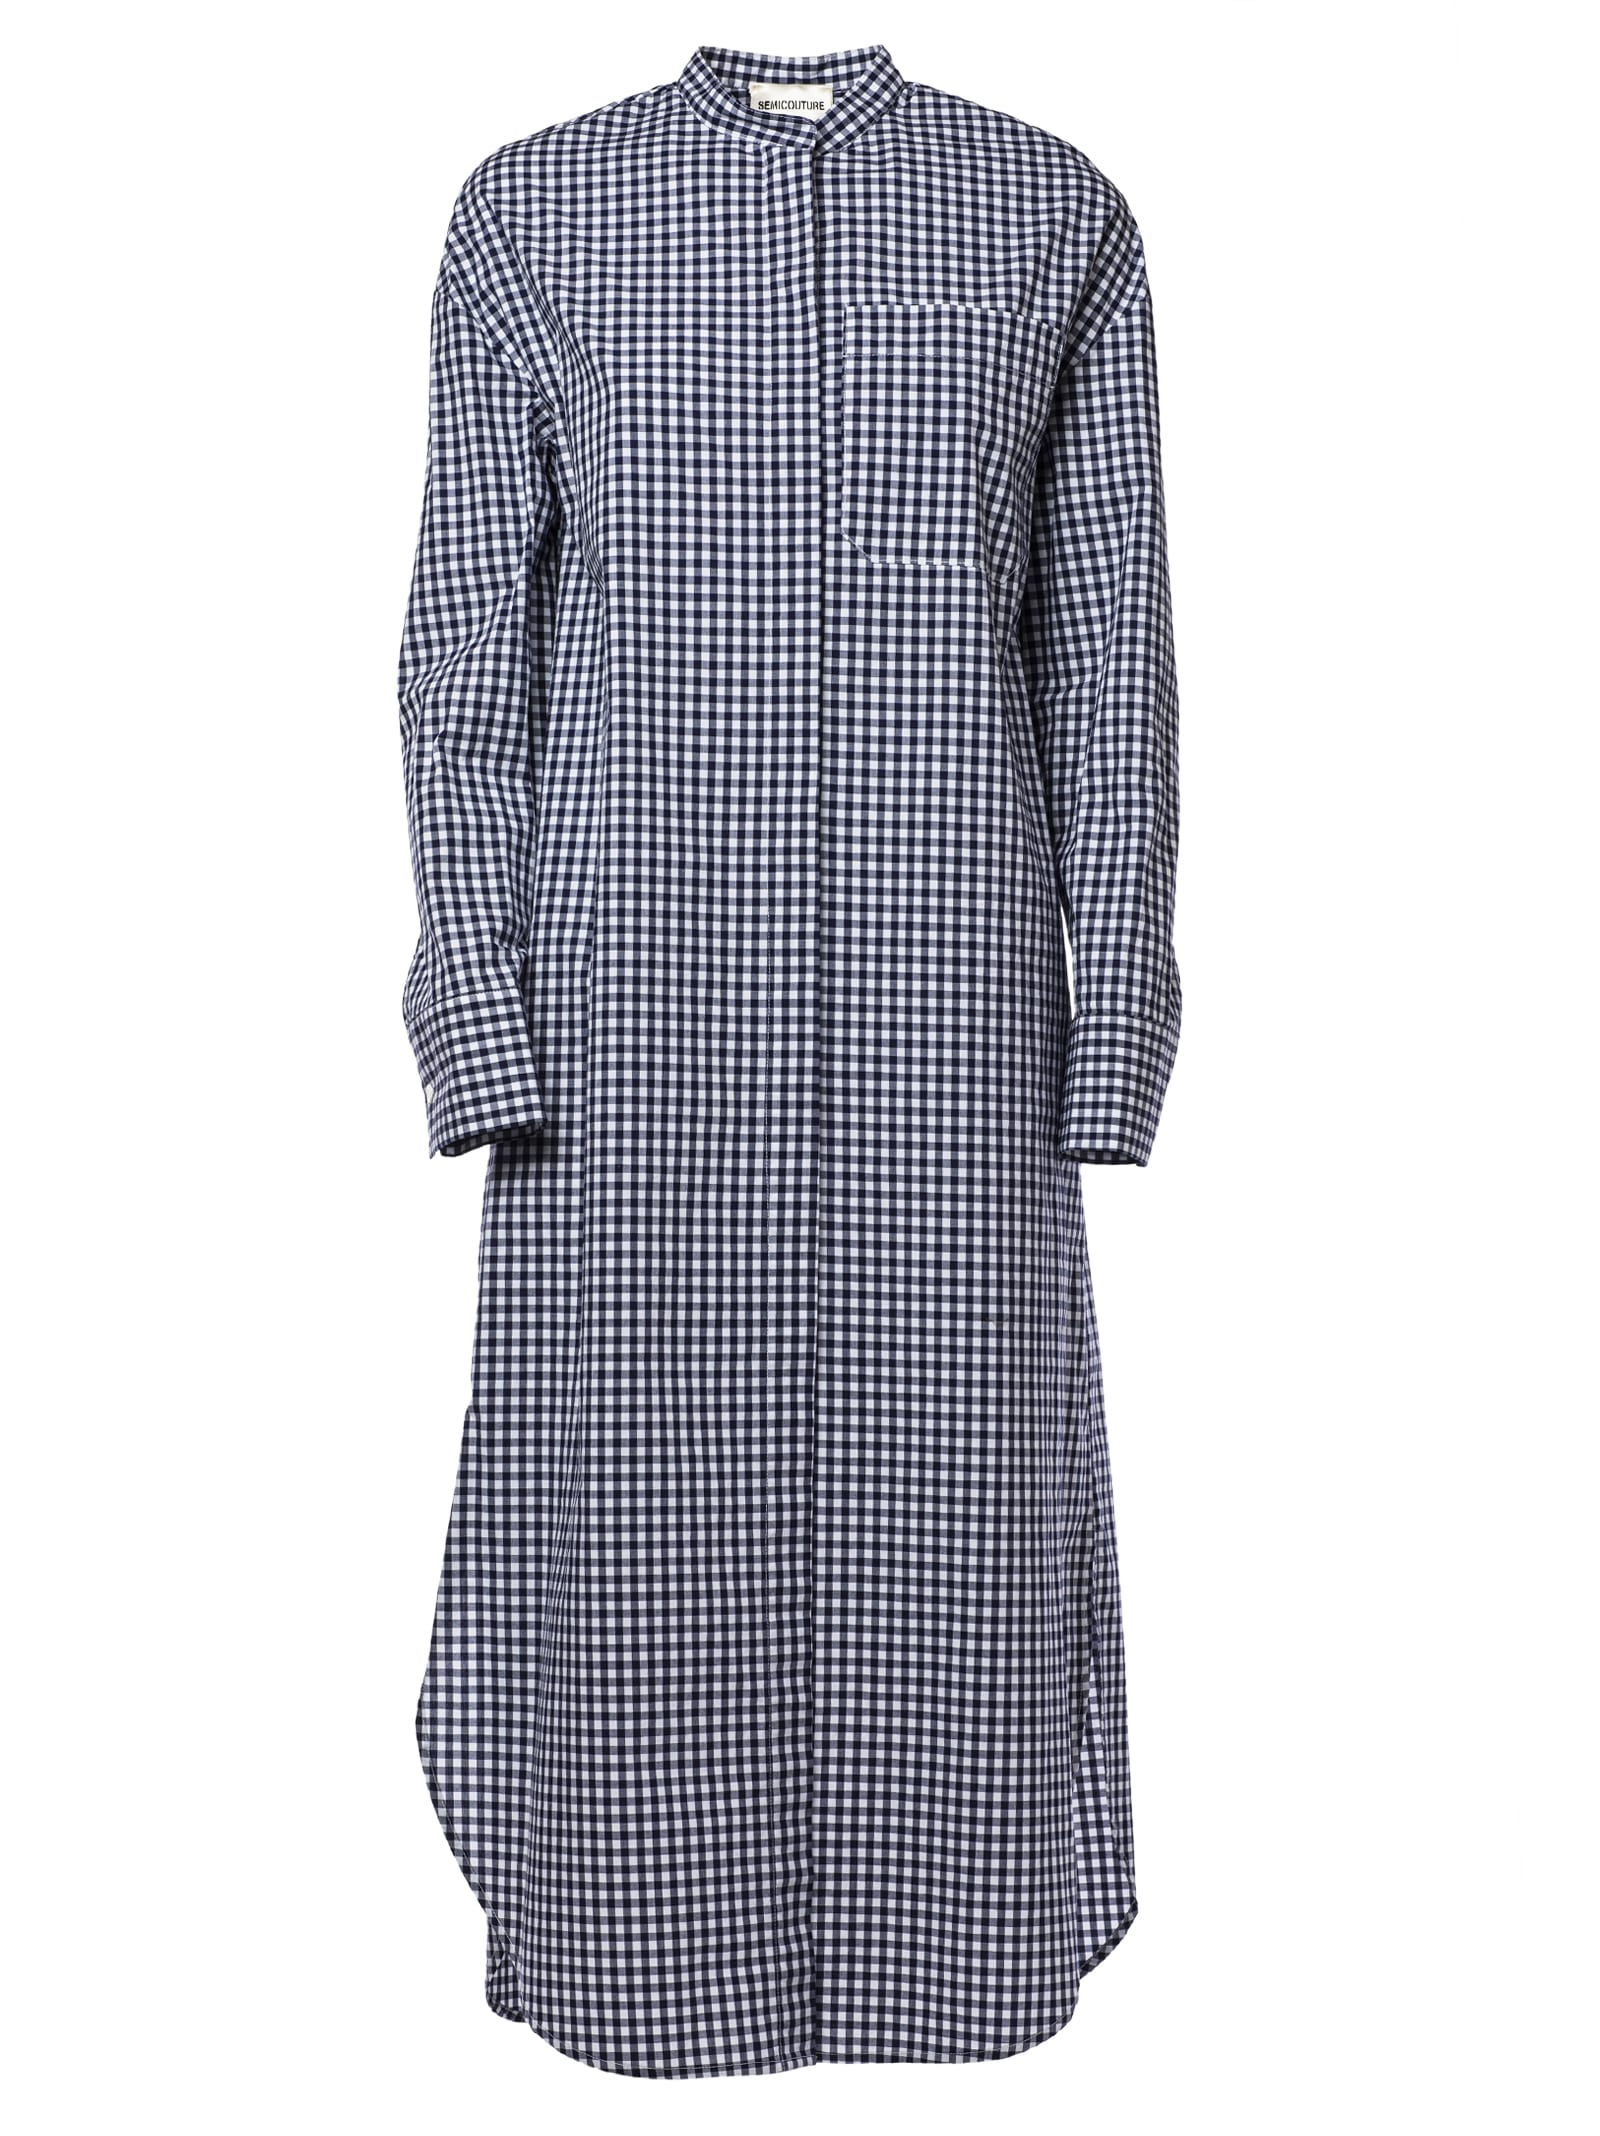 SEMICOUTURE Striped Shirt Dress